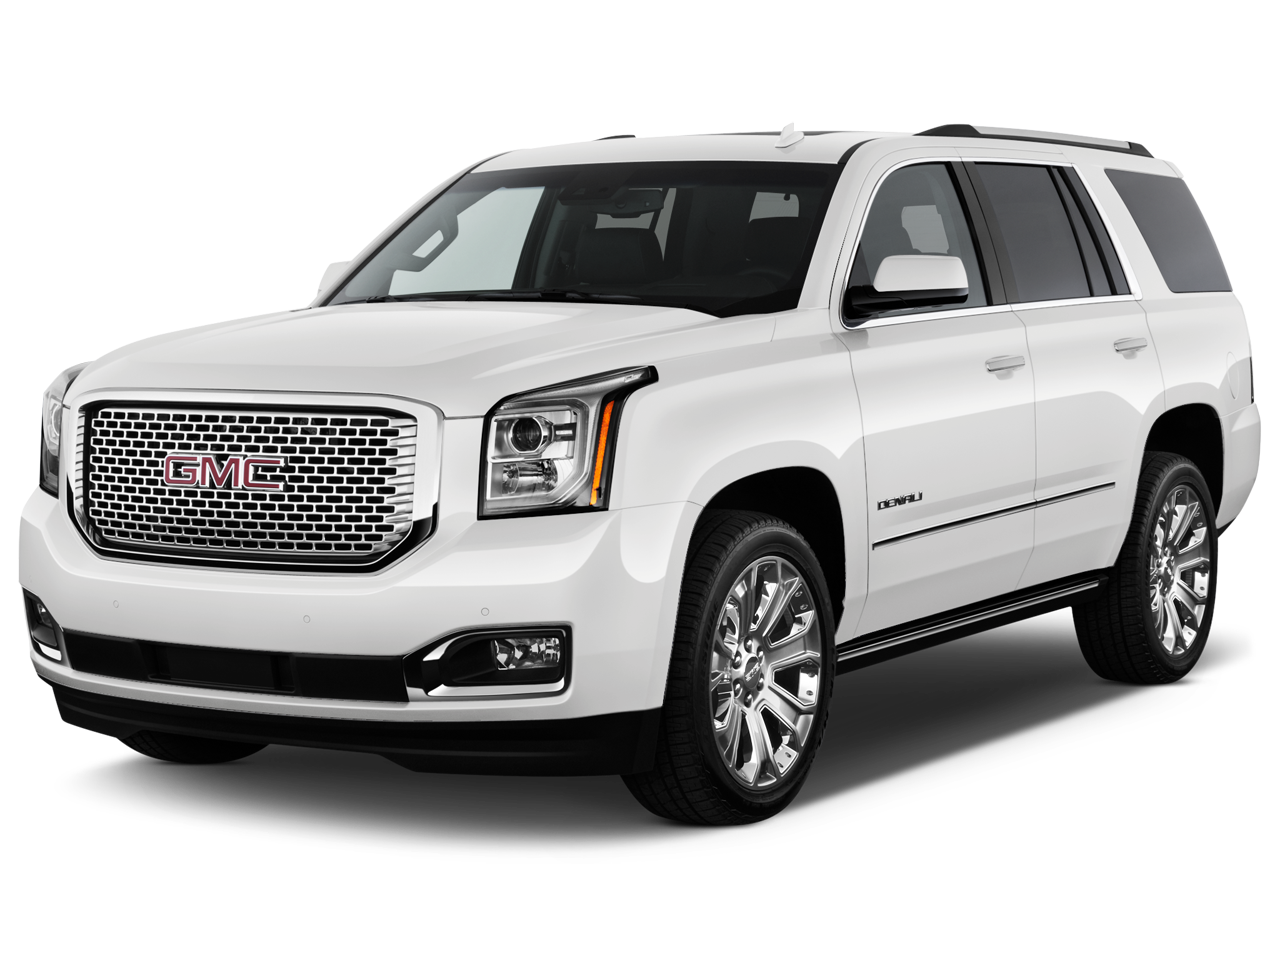 New 2017 Gmc Yukon Denali Near Easton Pa Star Buick Gmc